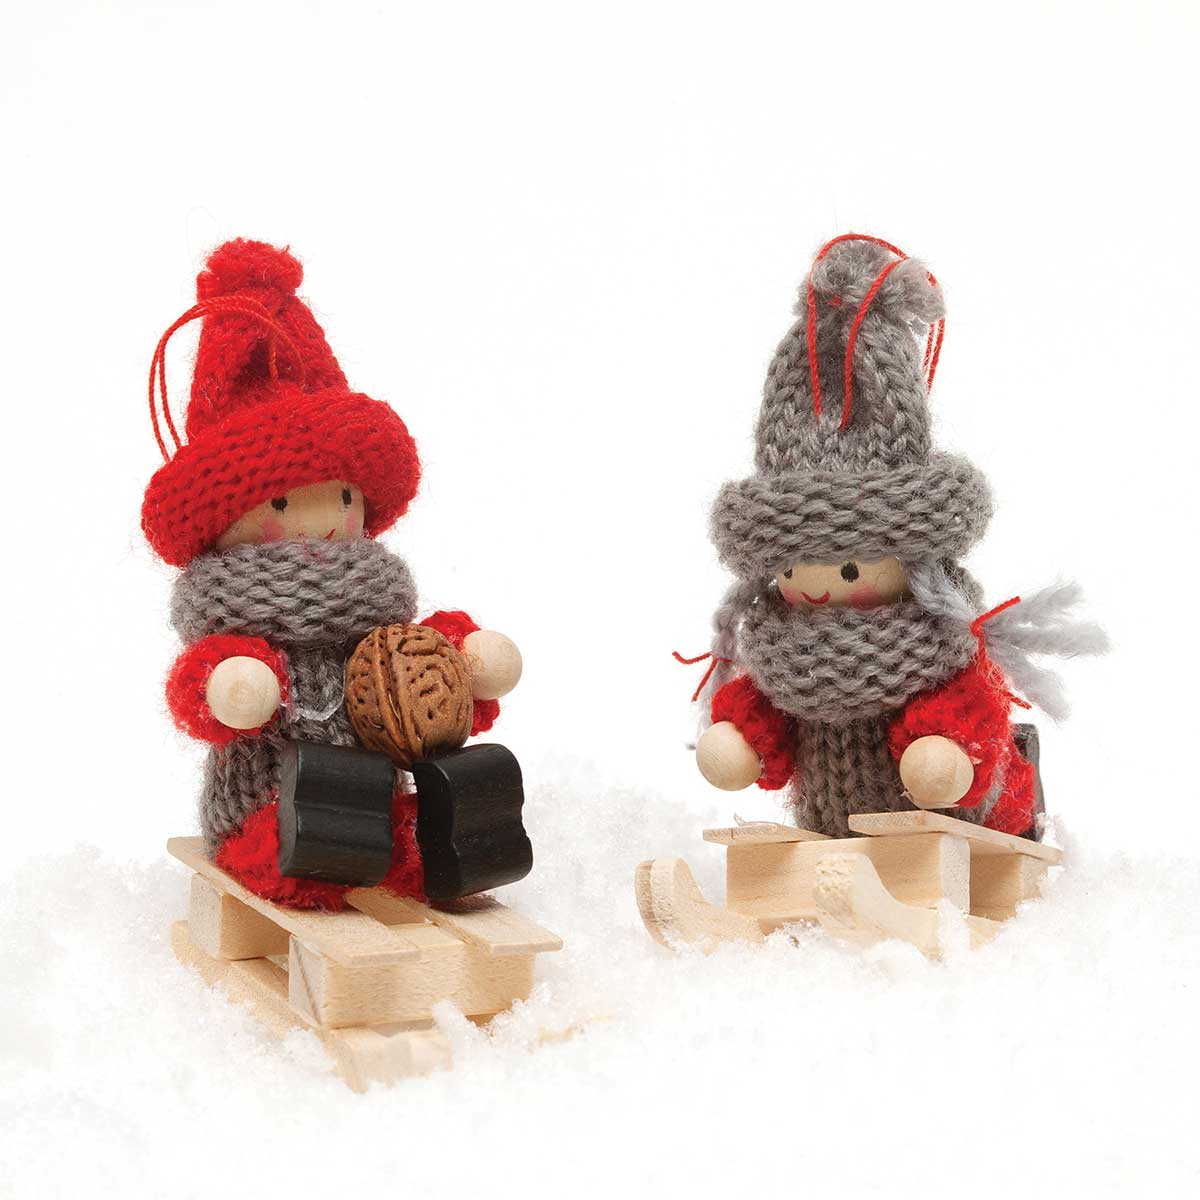 SLEDDING KID ORNAMENT